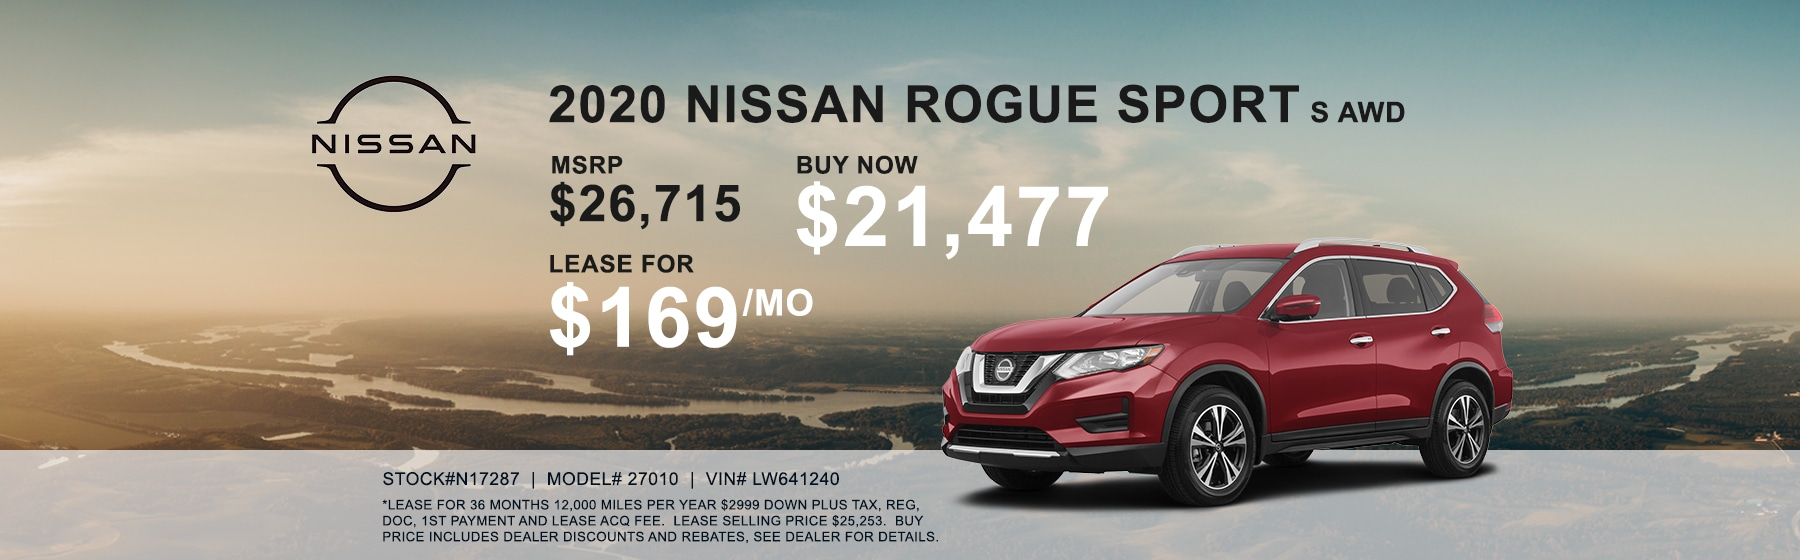 2020 Nissan Rogue Sport AWD Lease for $169 per month